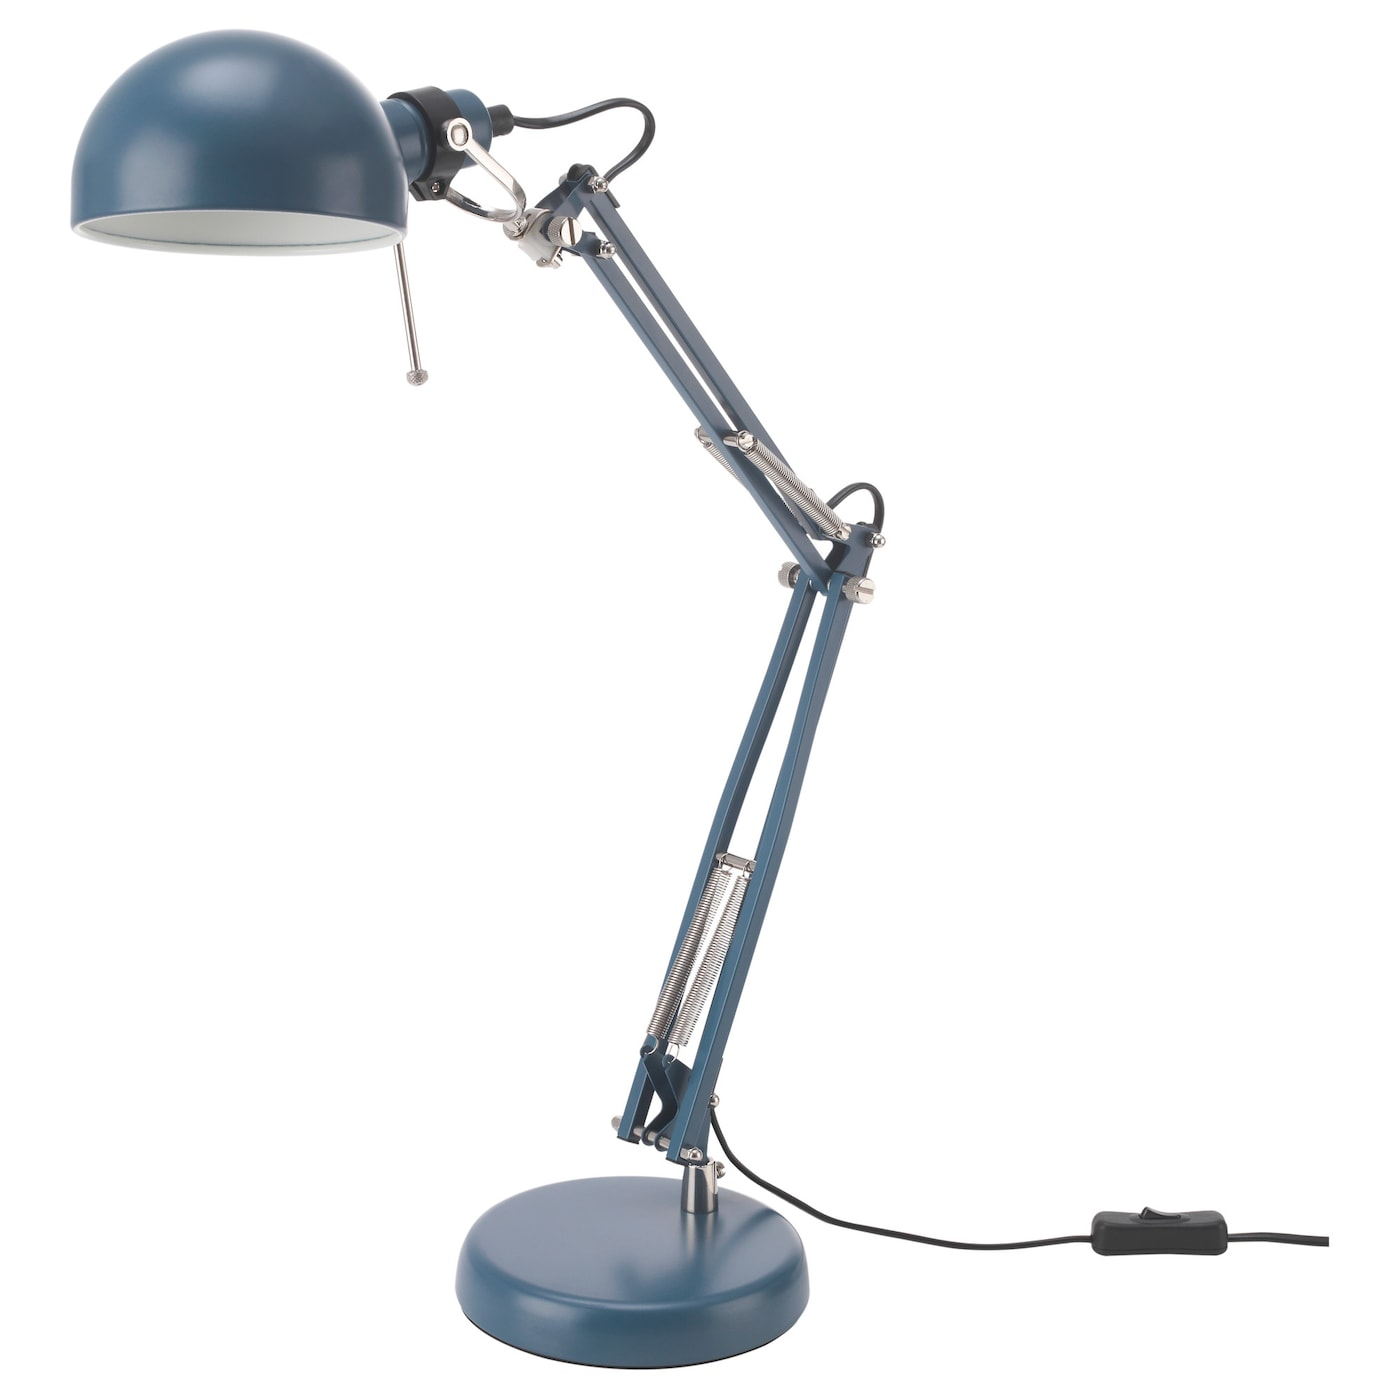 ikea work lamps led desk lamps clamp spotlights. Black Bedroom Furniture Sets. Home Design Ideas